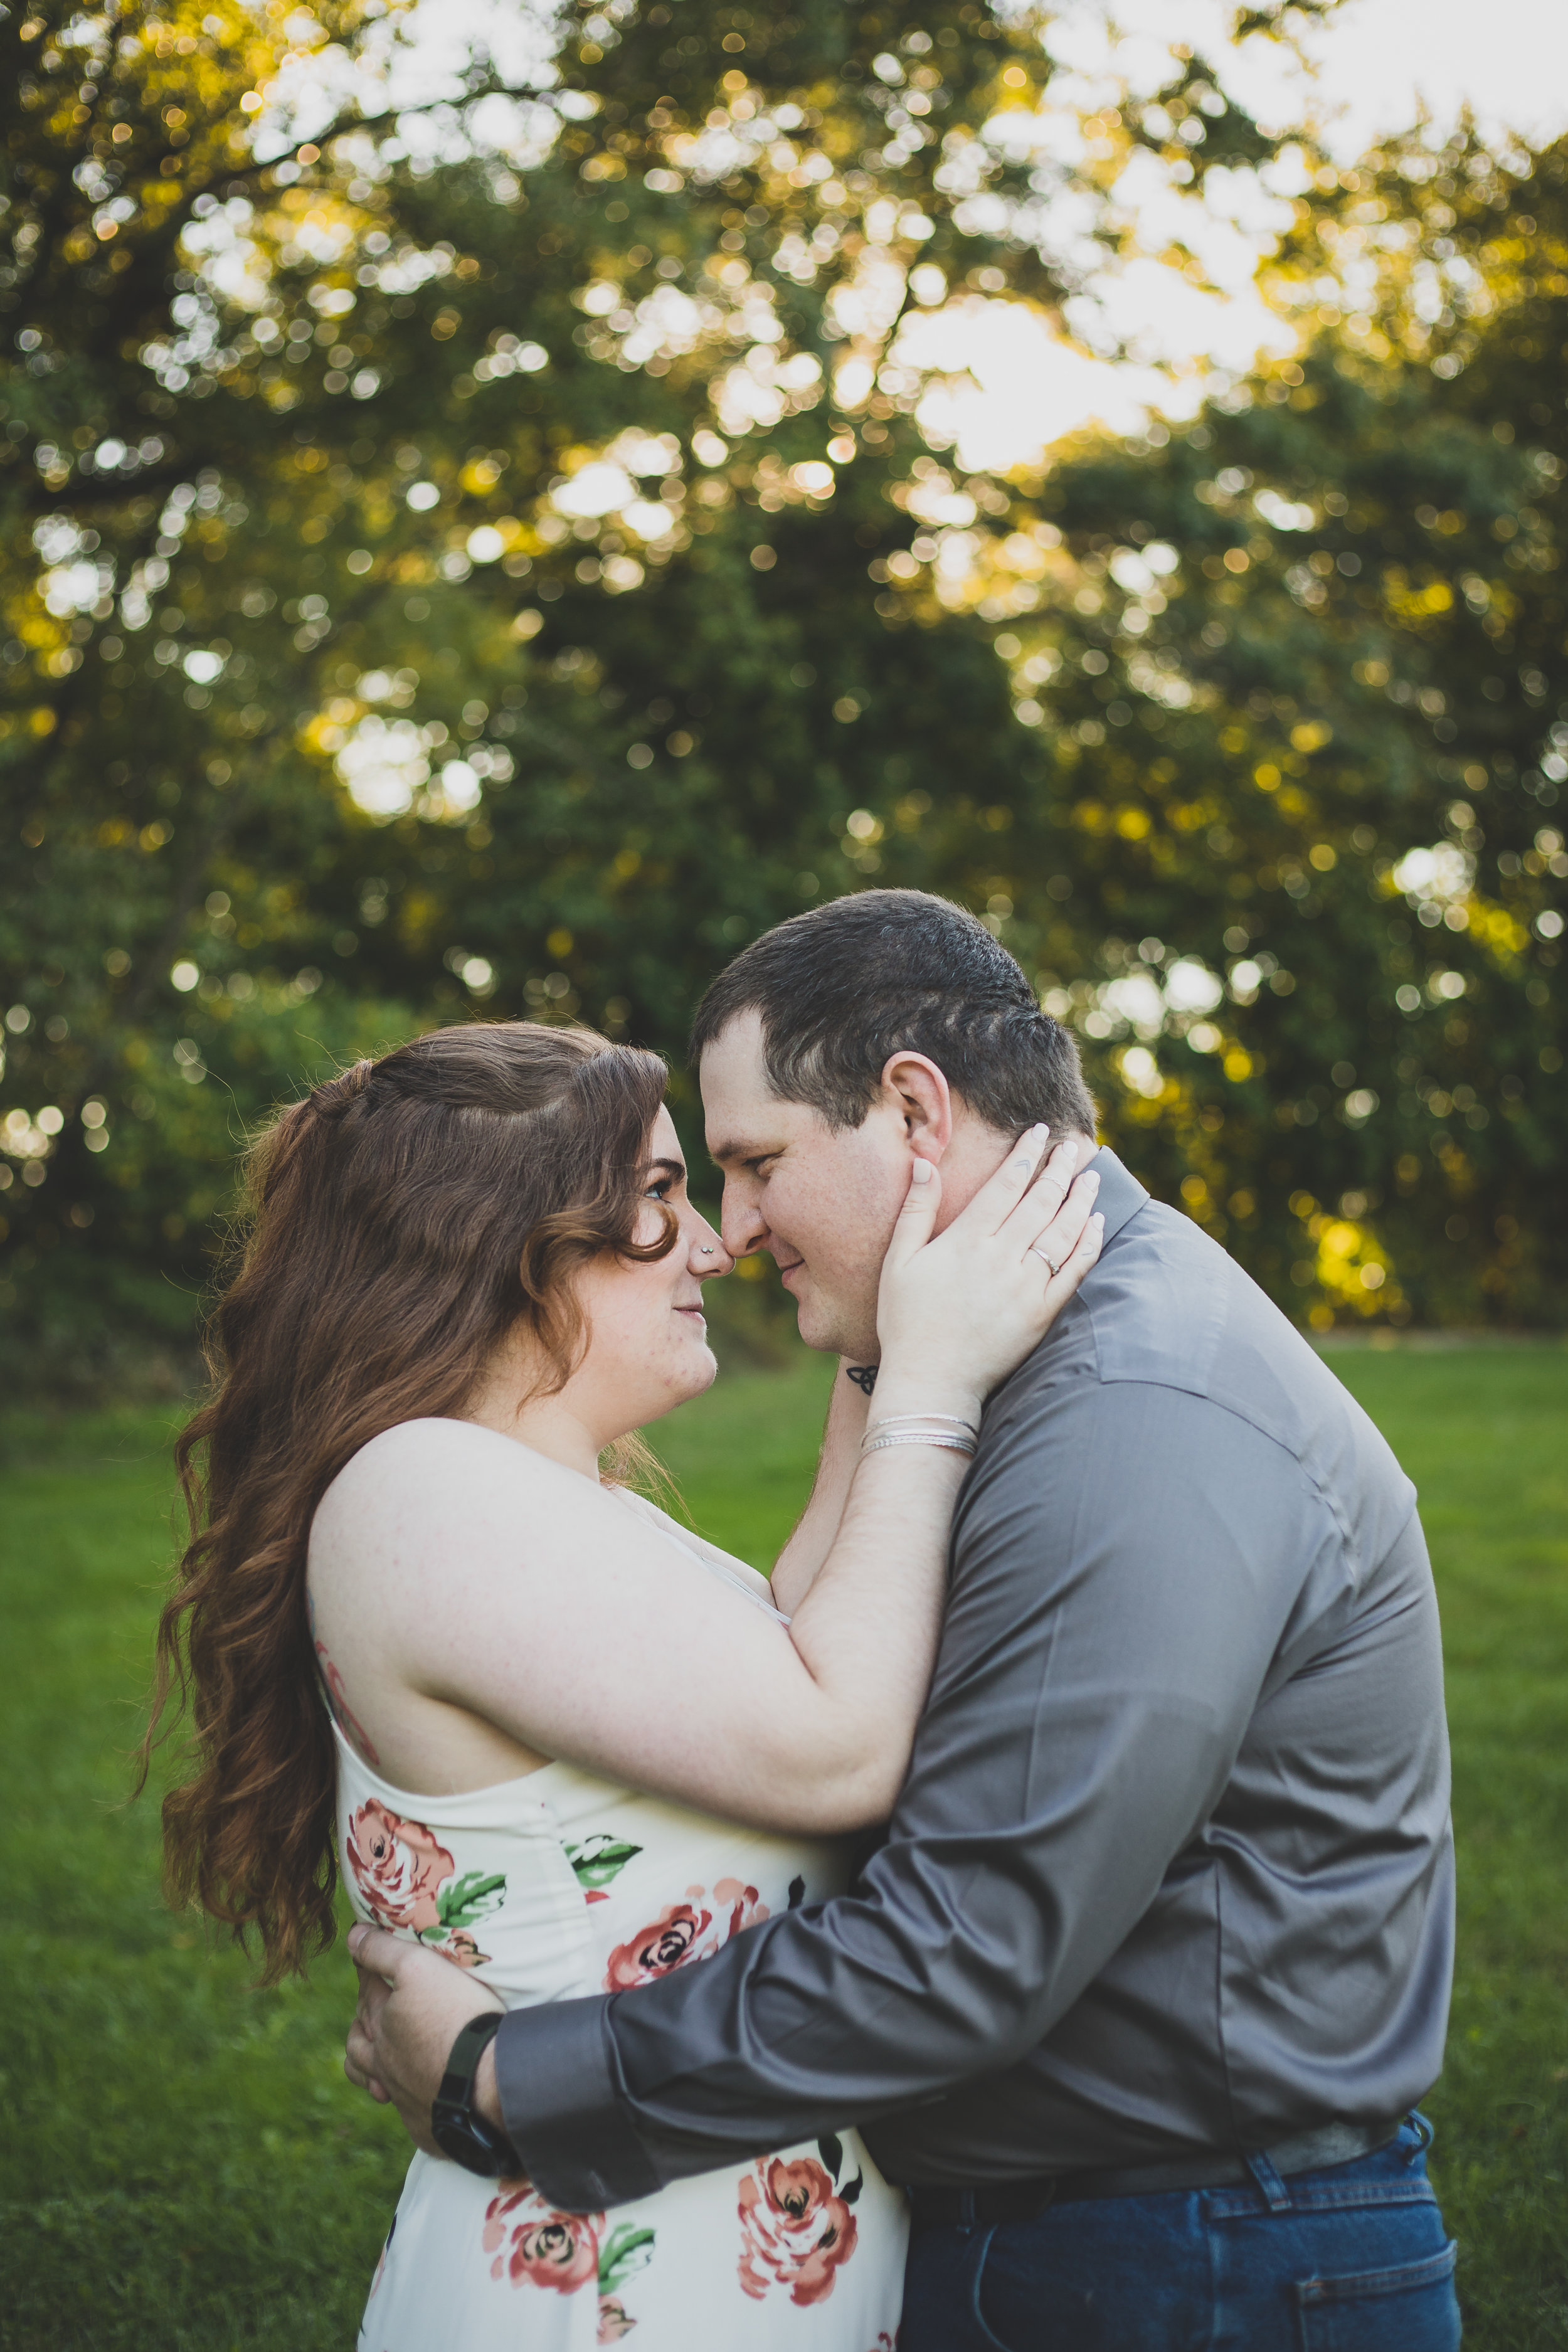 Michelle Carter Photography-Engagement Photography-Cuyahoga Valley National Park-10.jpg